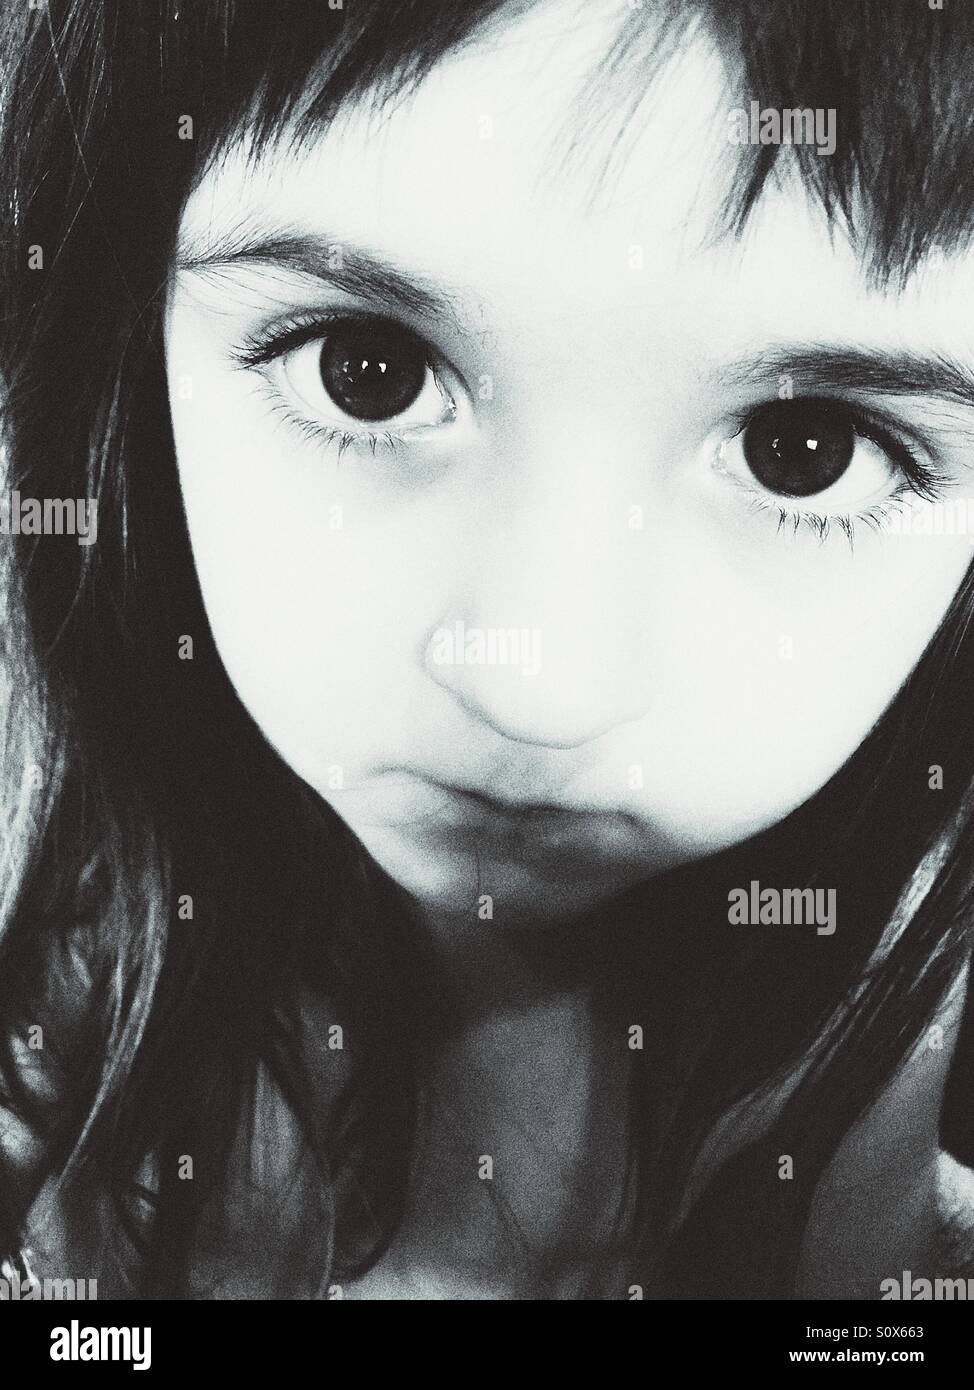 Black and white portrait of Caucasian girl. - Stock Image